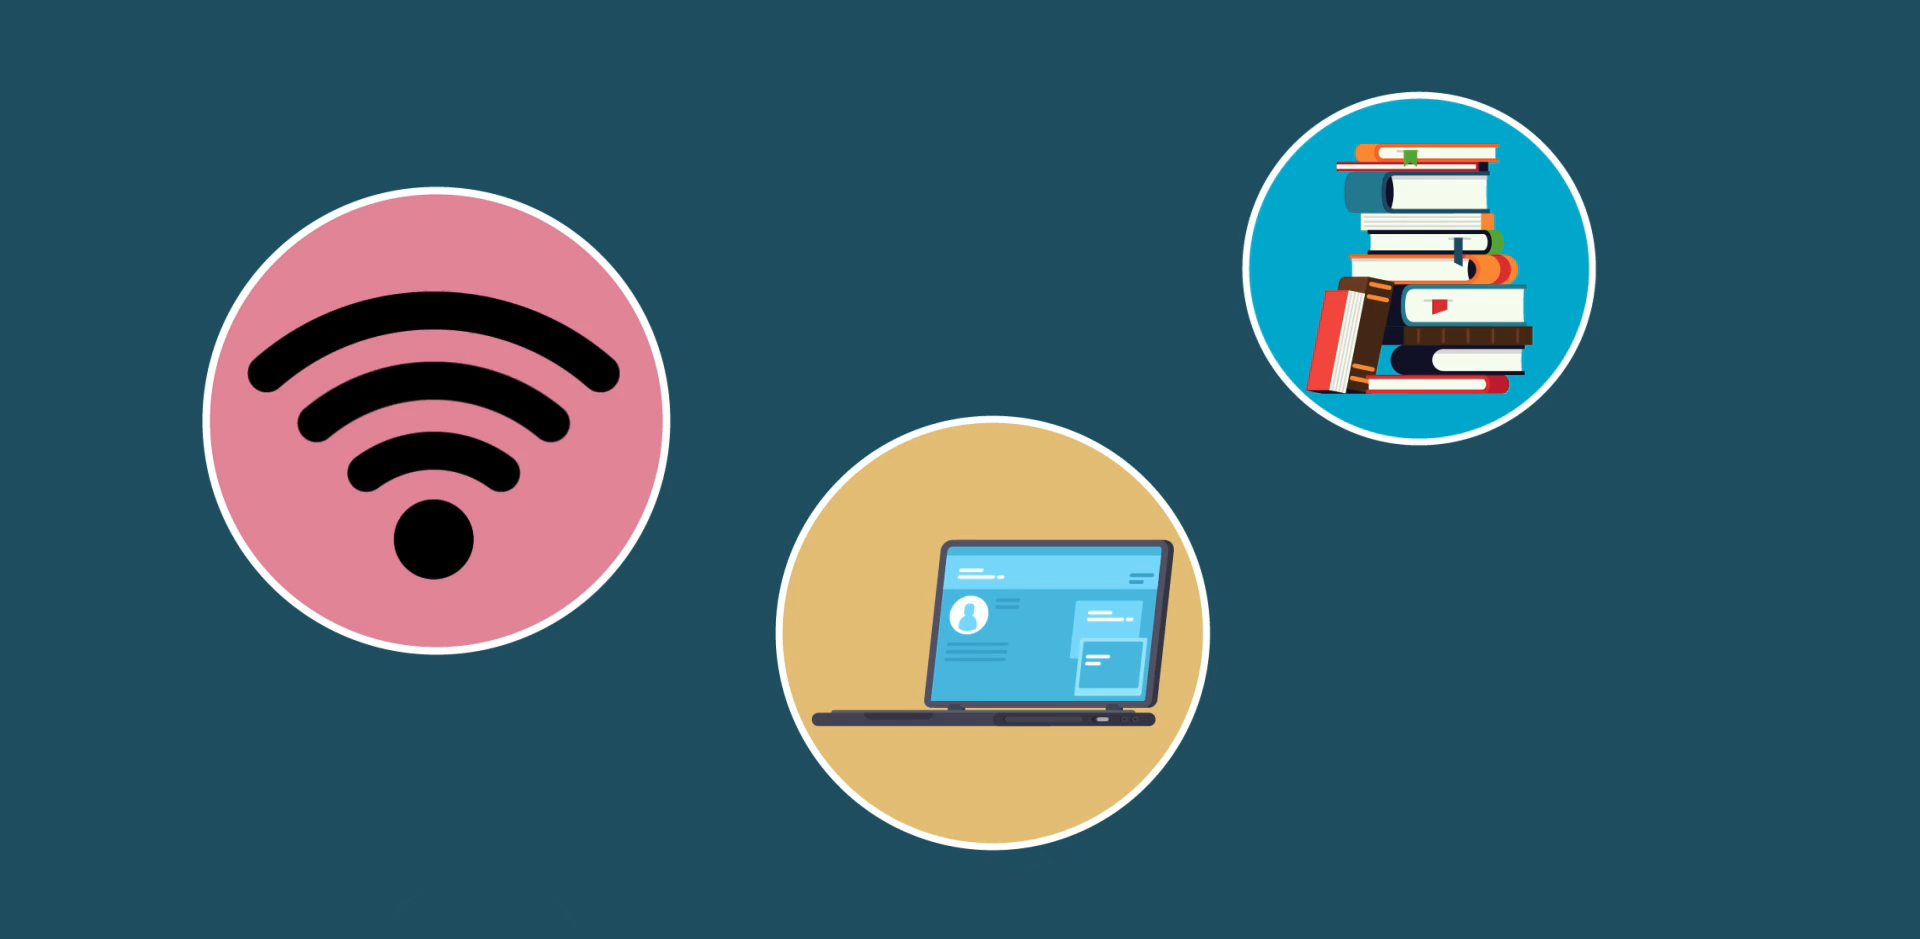 Animated drawing of wifi symbol, books and laptop to show different methods of teaching